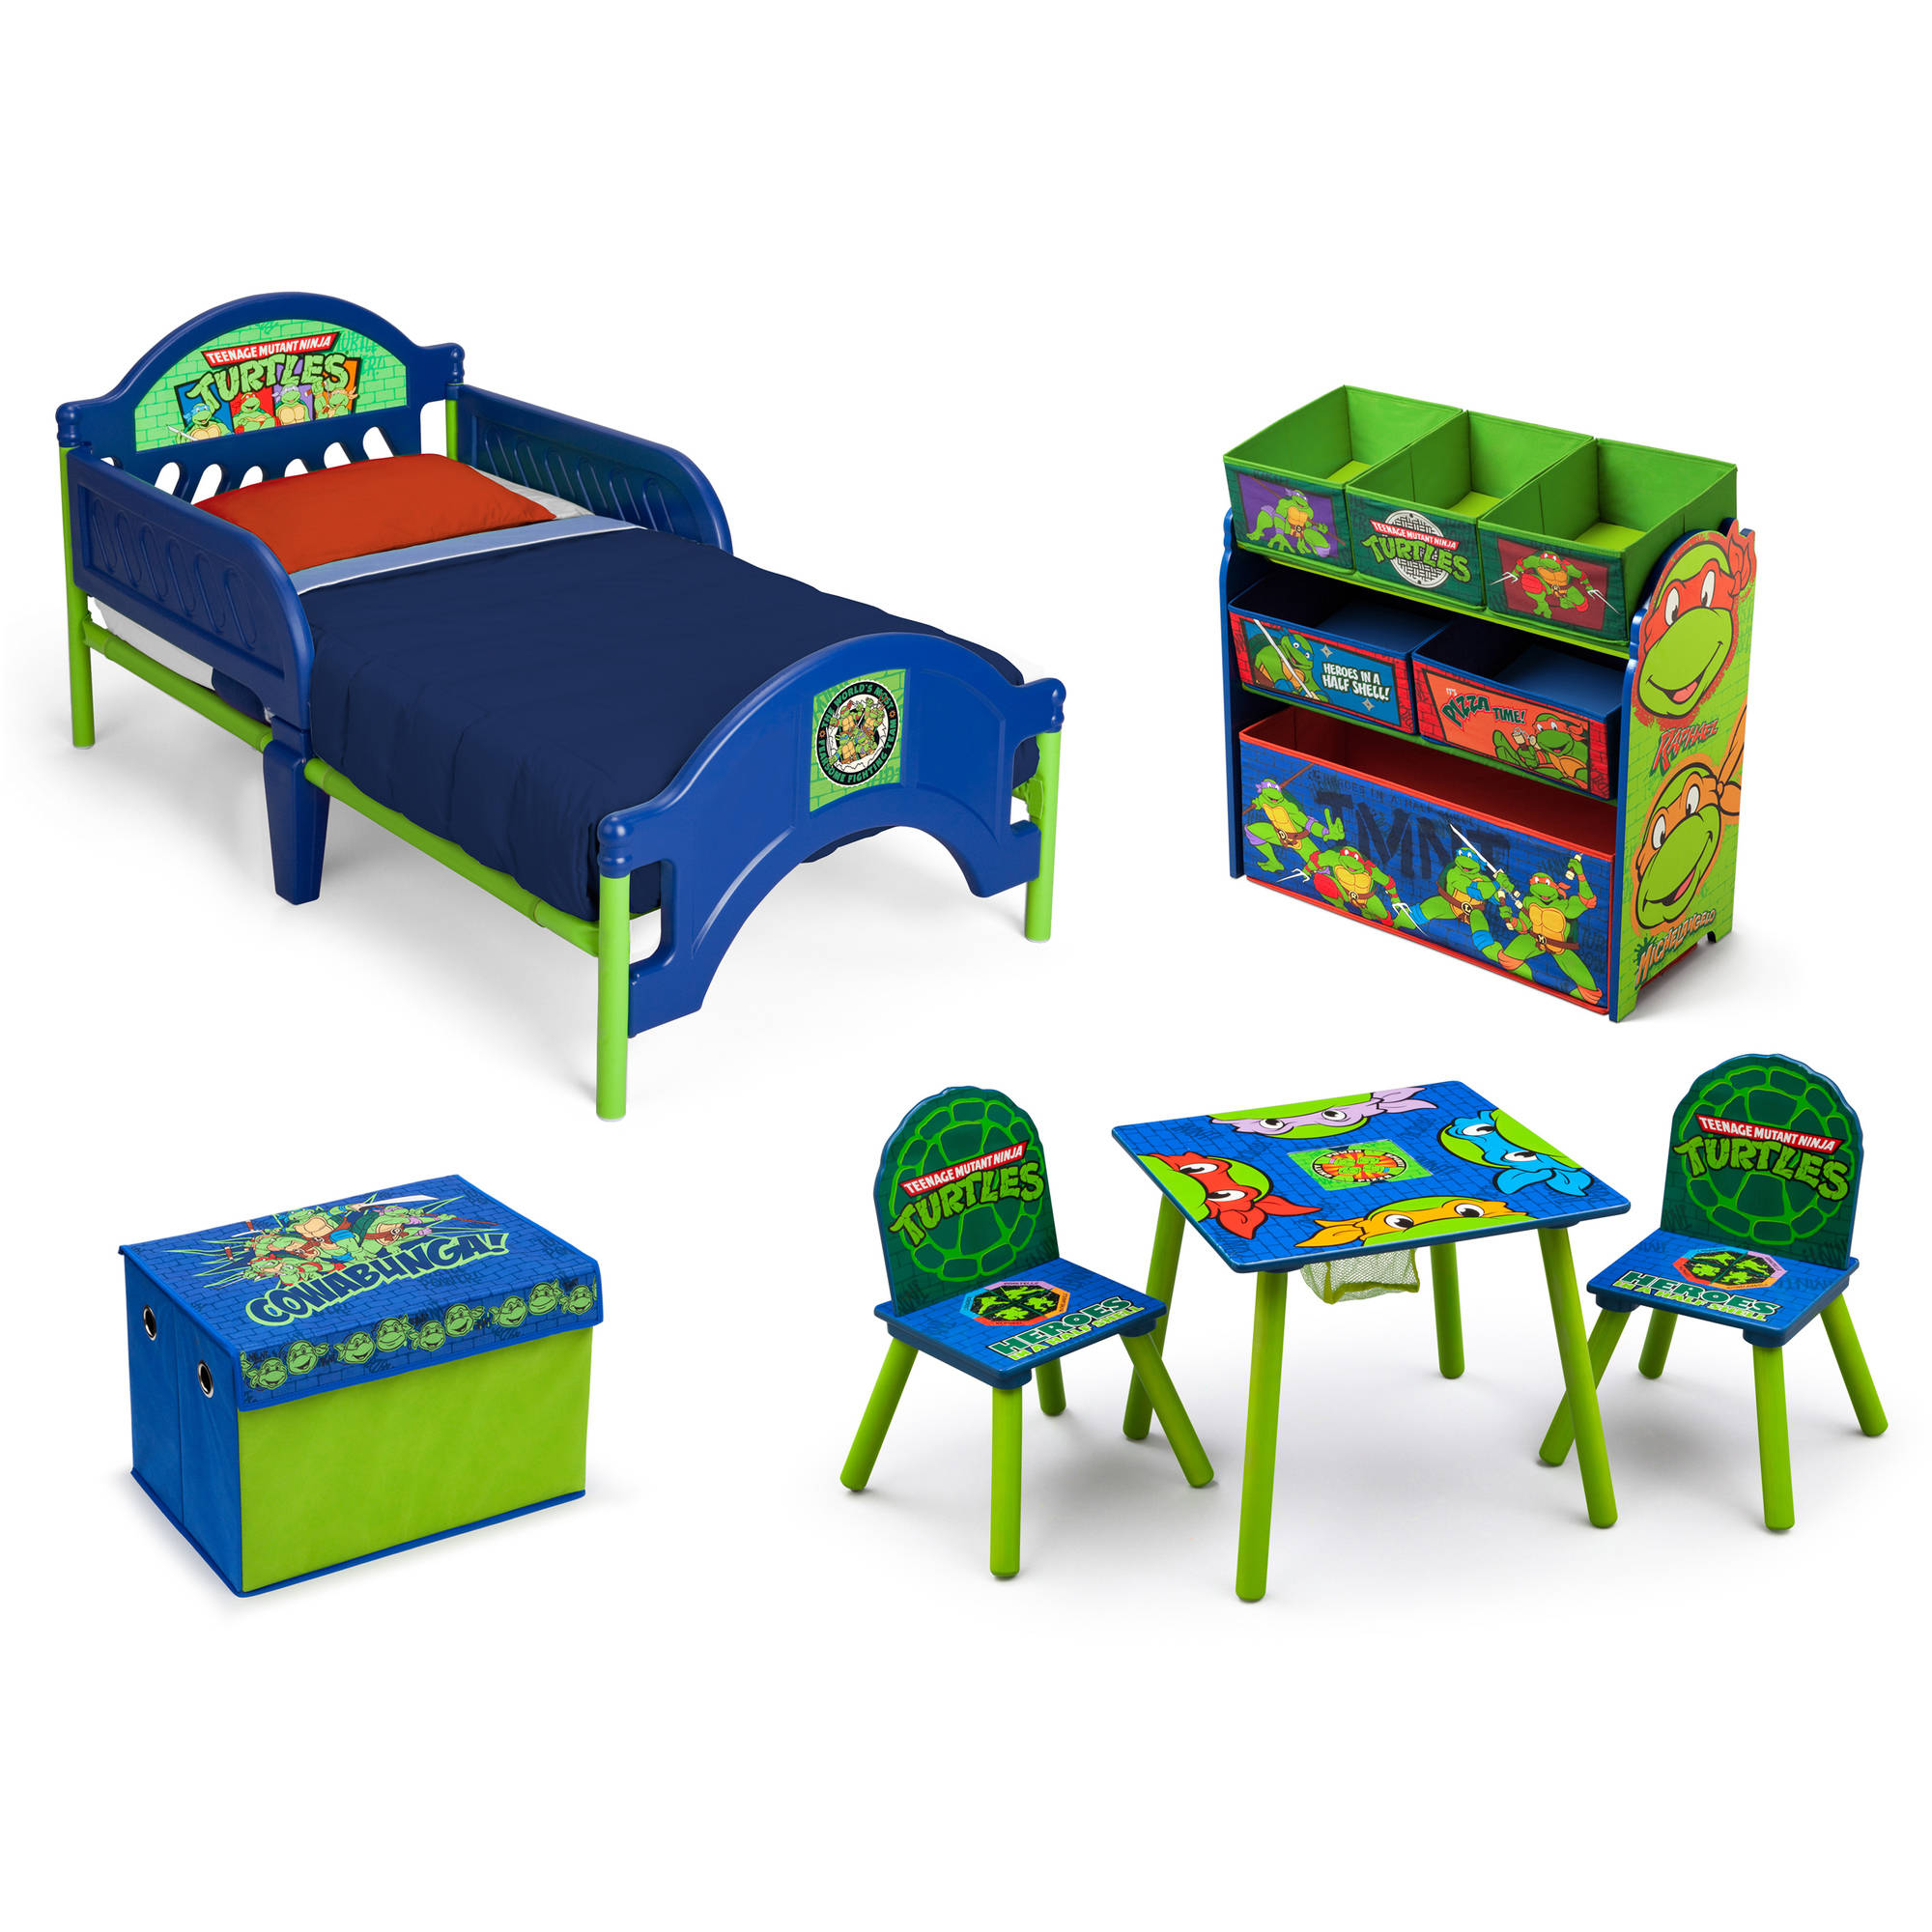 Nickelodeon Ninja Turtles Room in a Box with BONUS Toy Bin